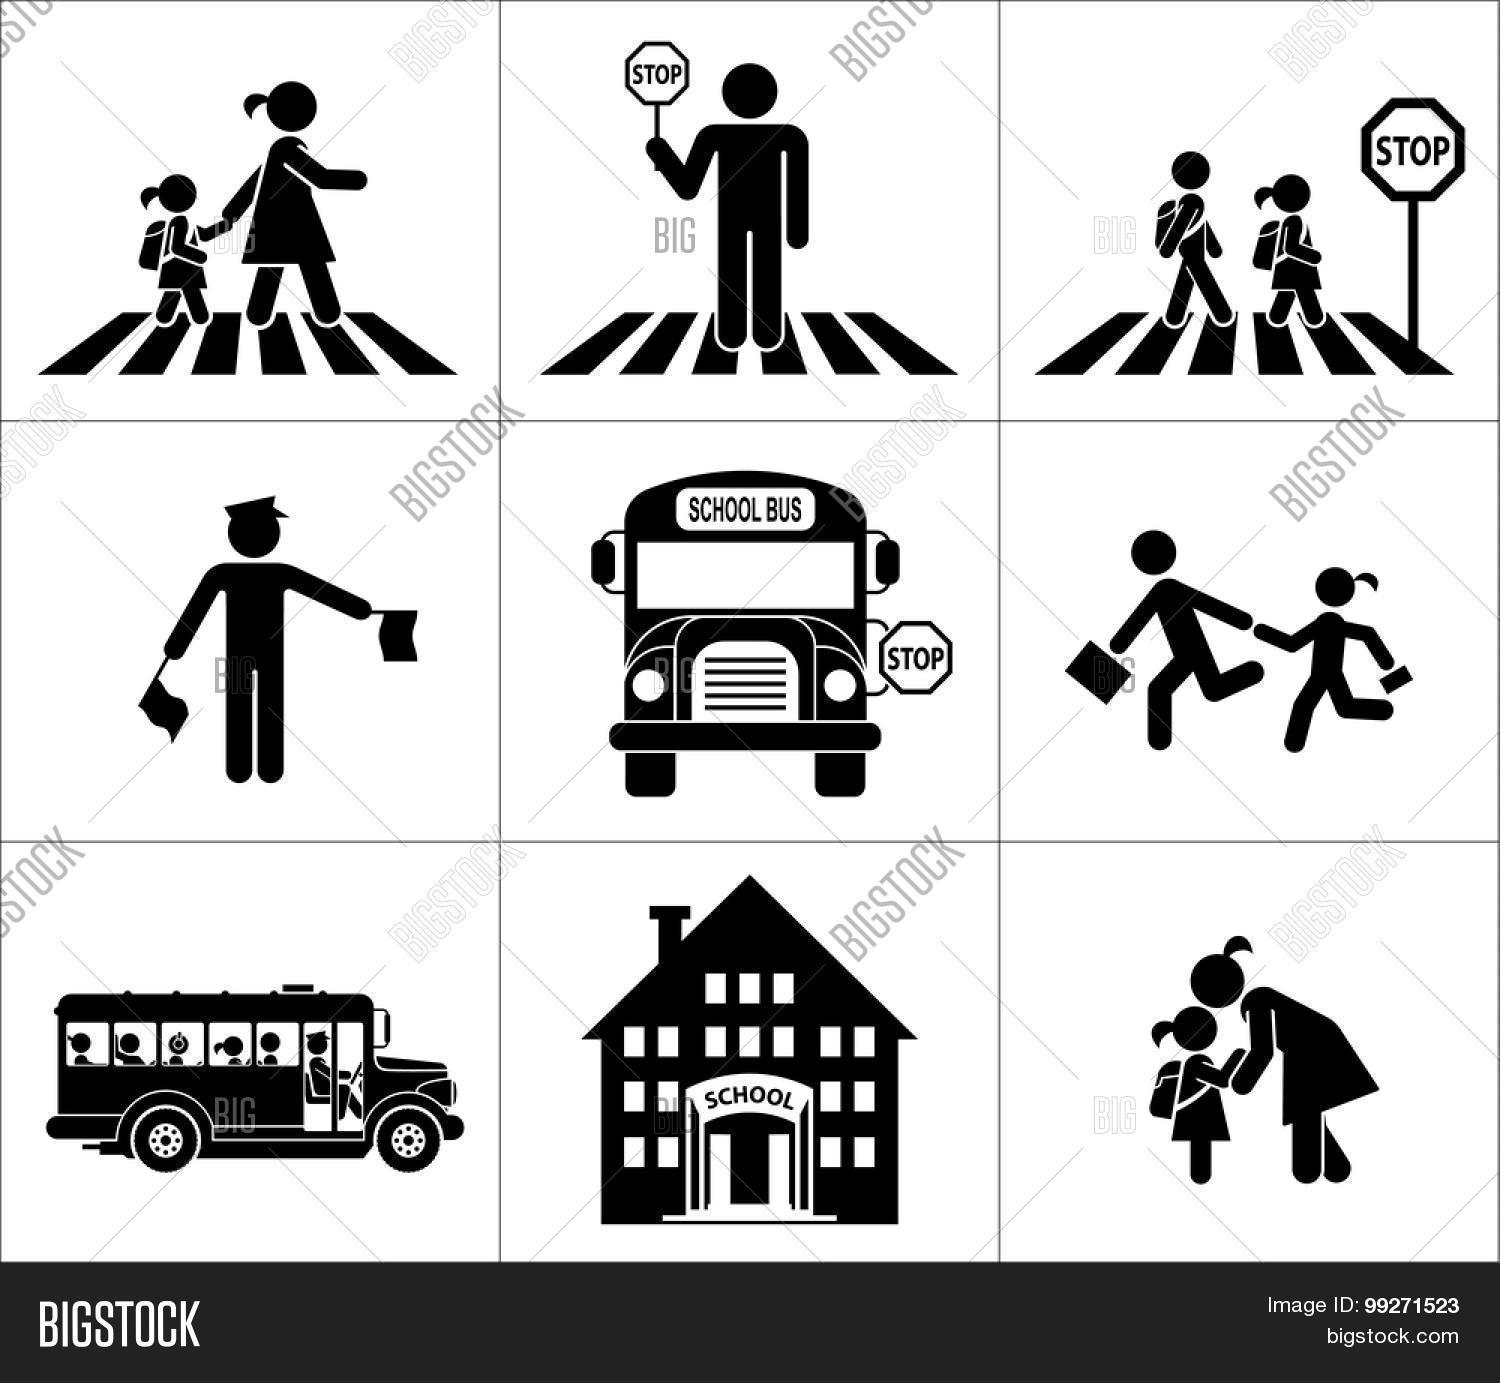 Safety Children Traffic Children Vector Amp Photo